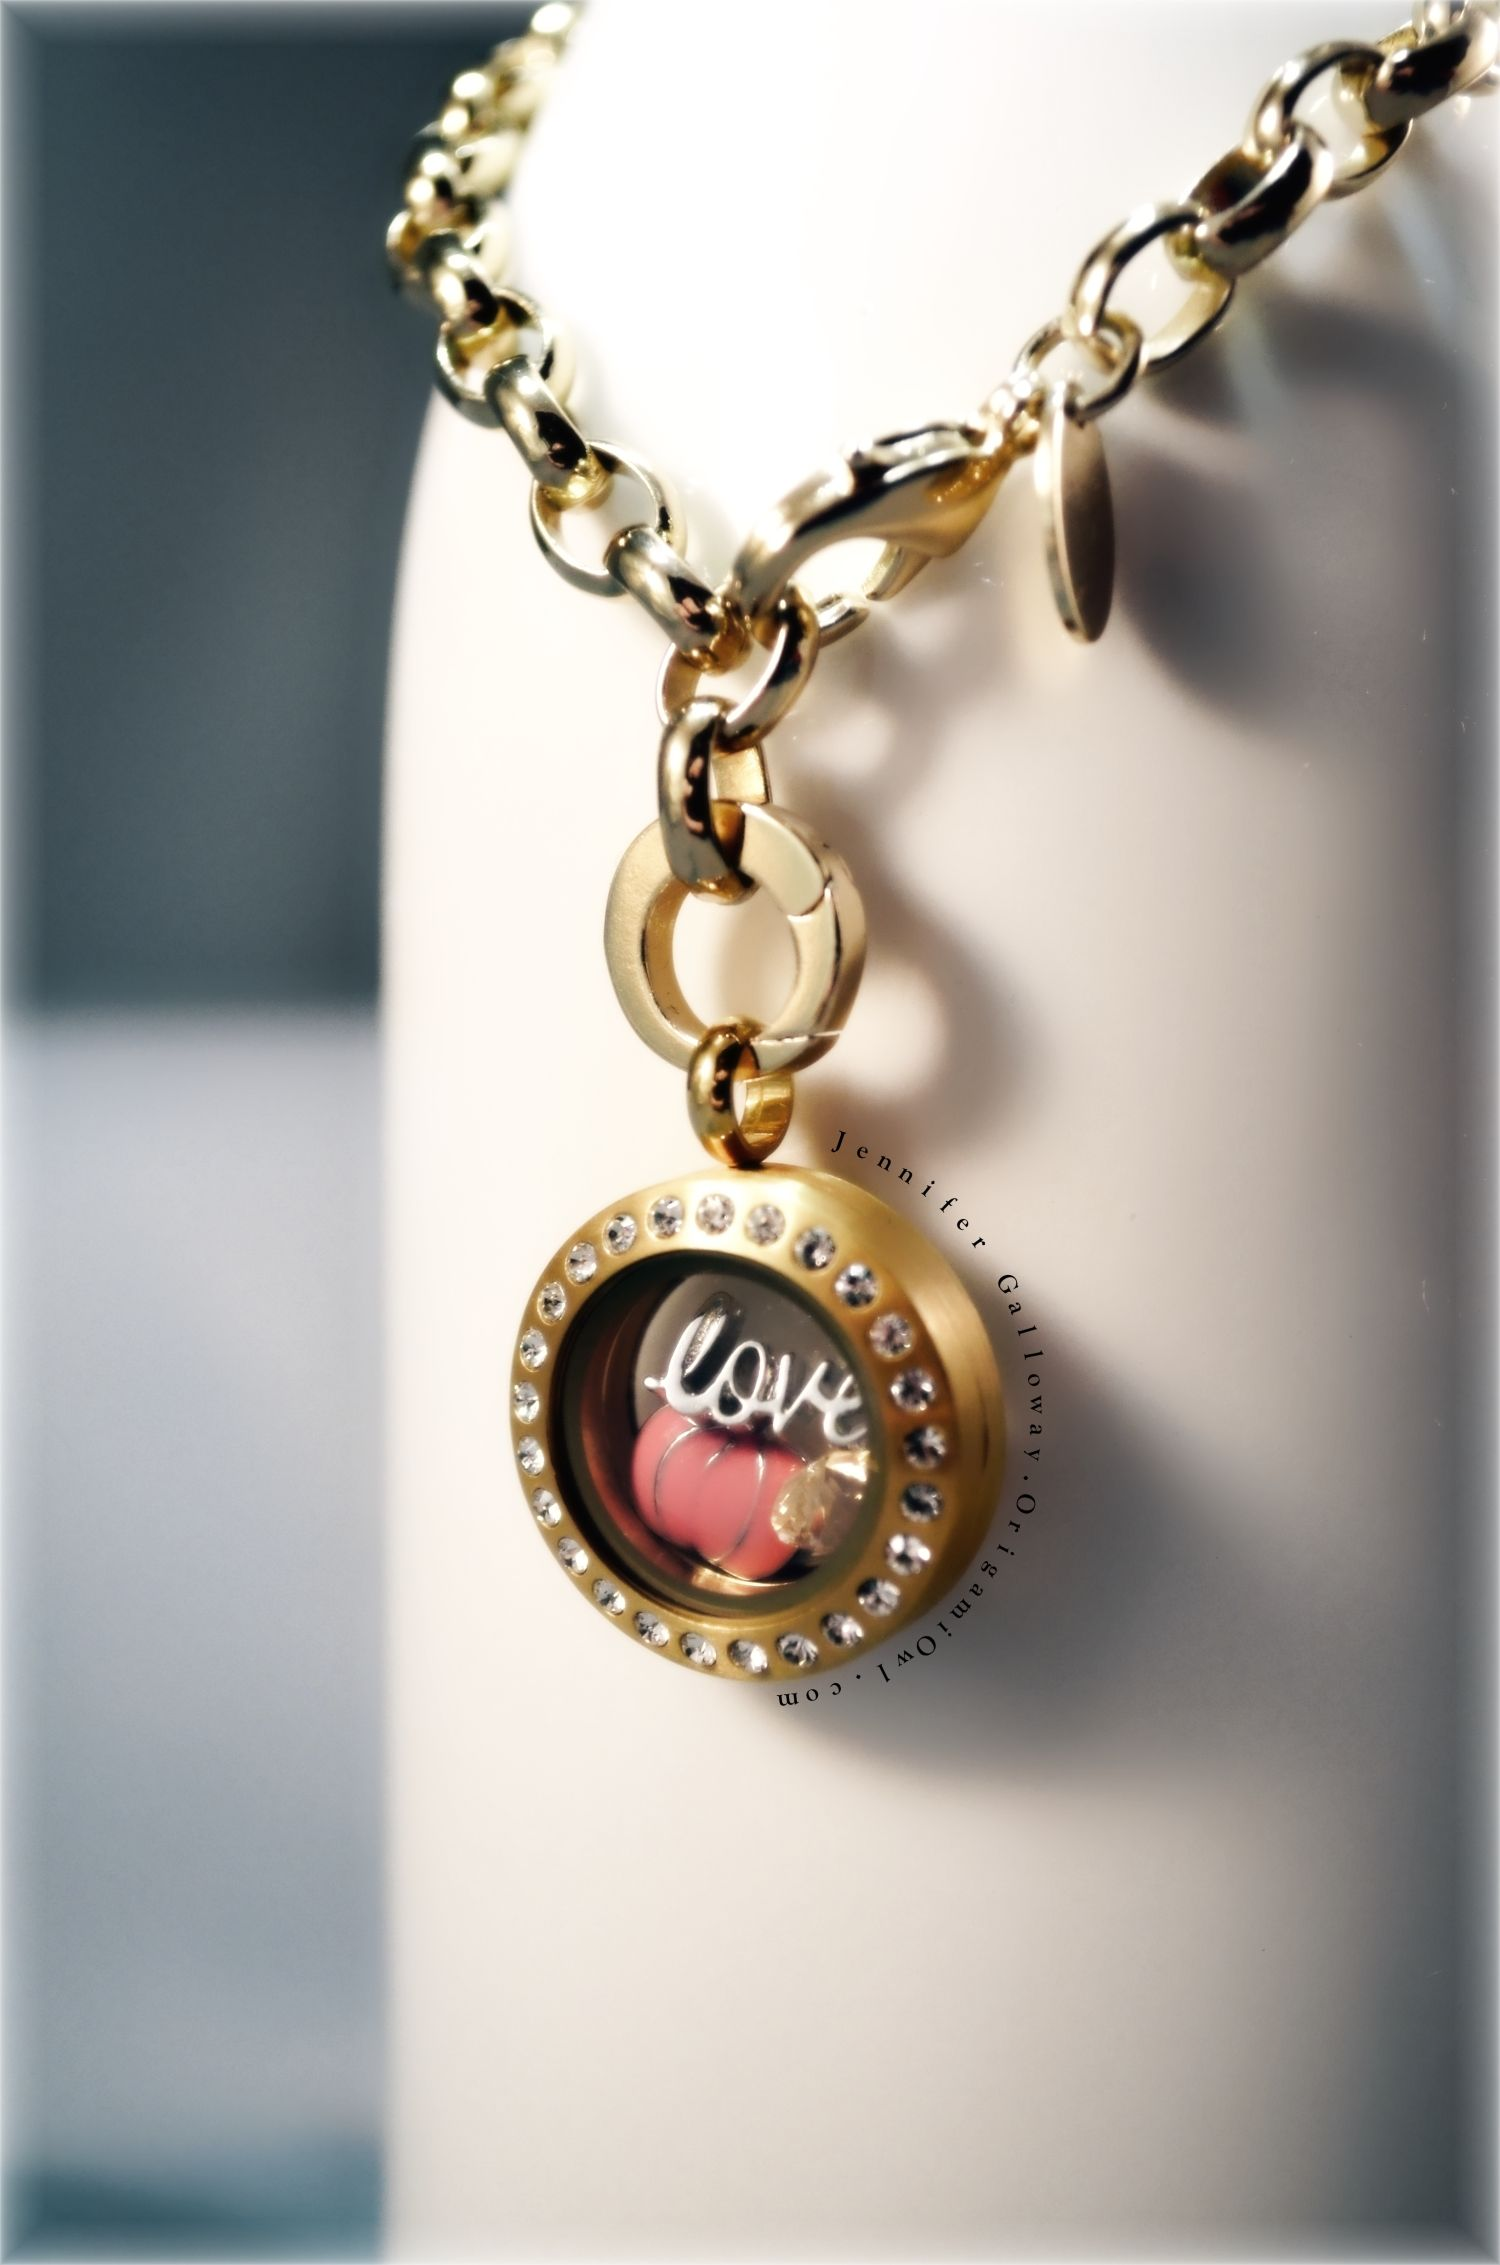 rose locketinn bracelet shop locket plain braclets lockets gold